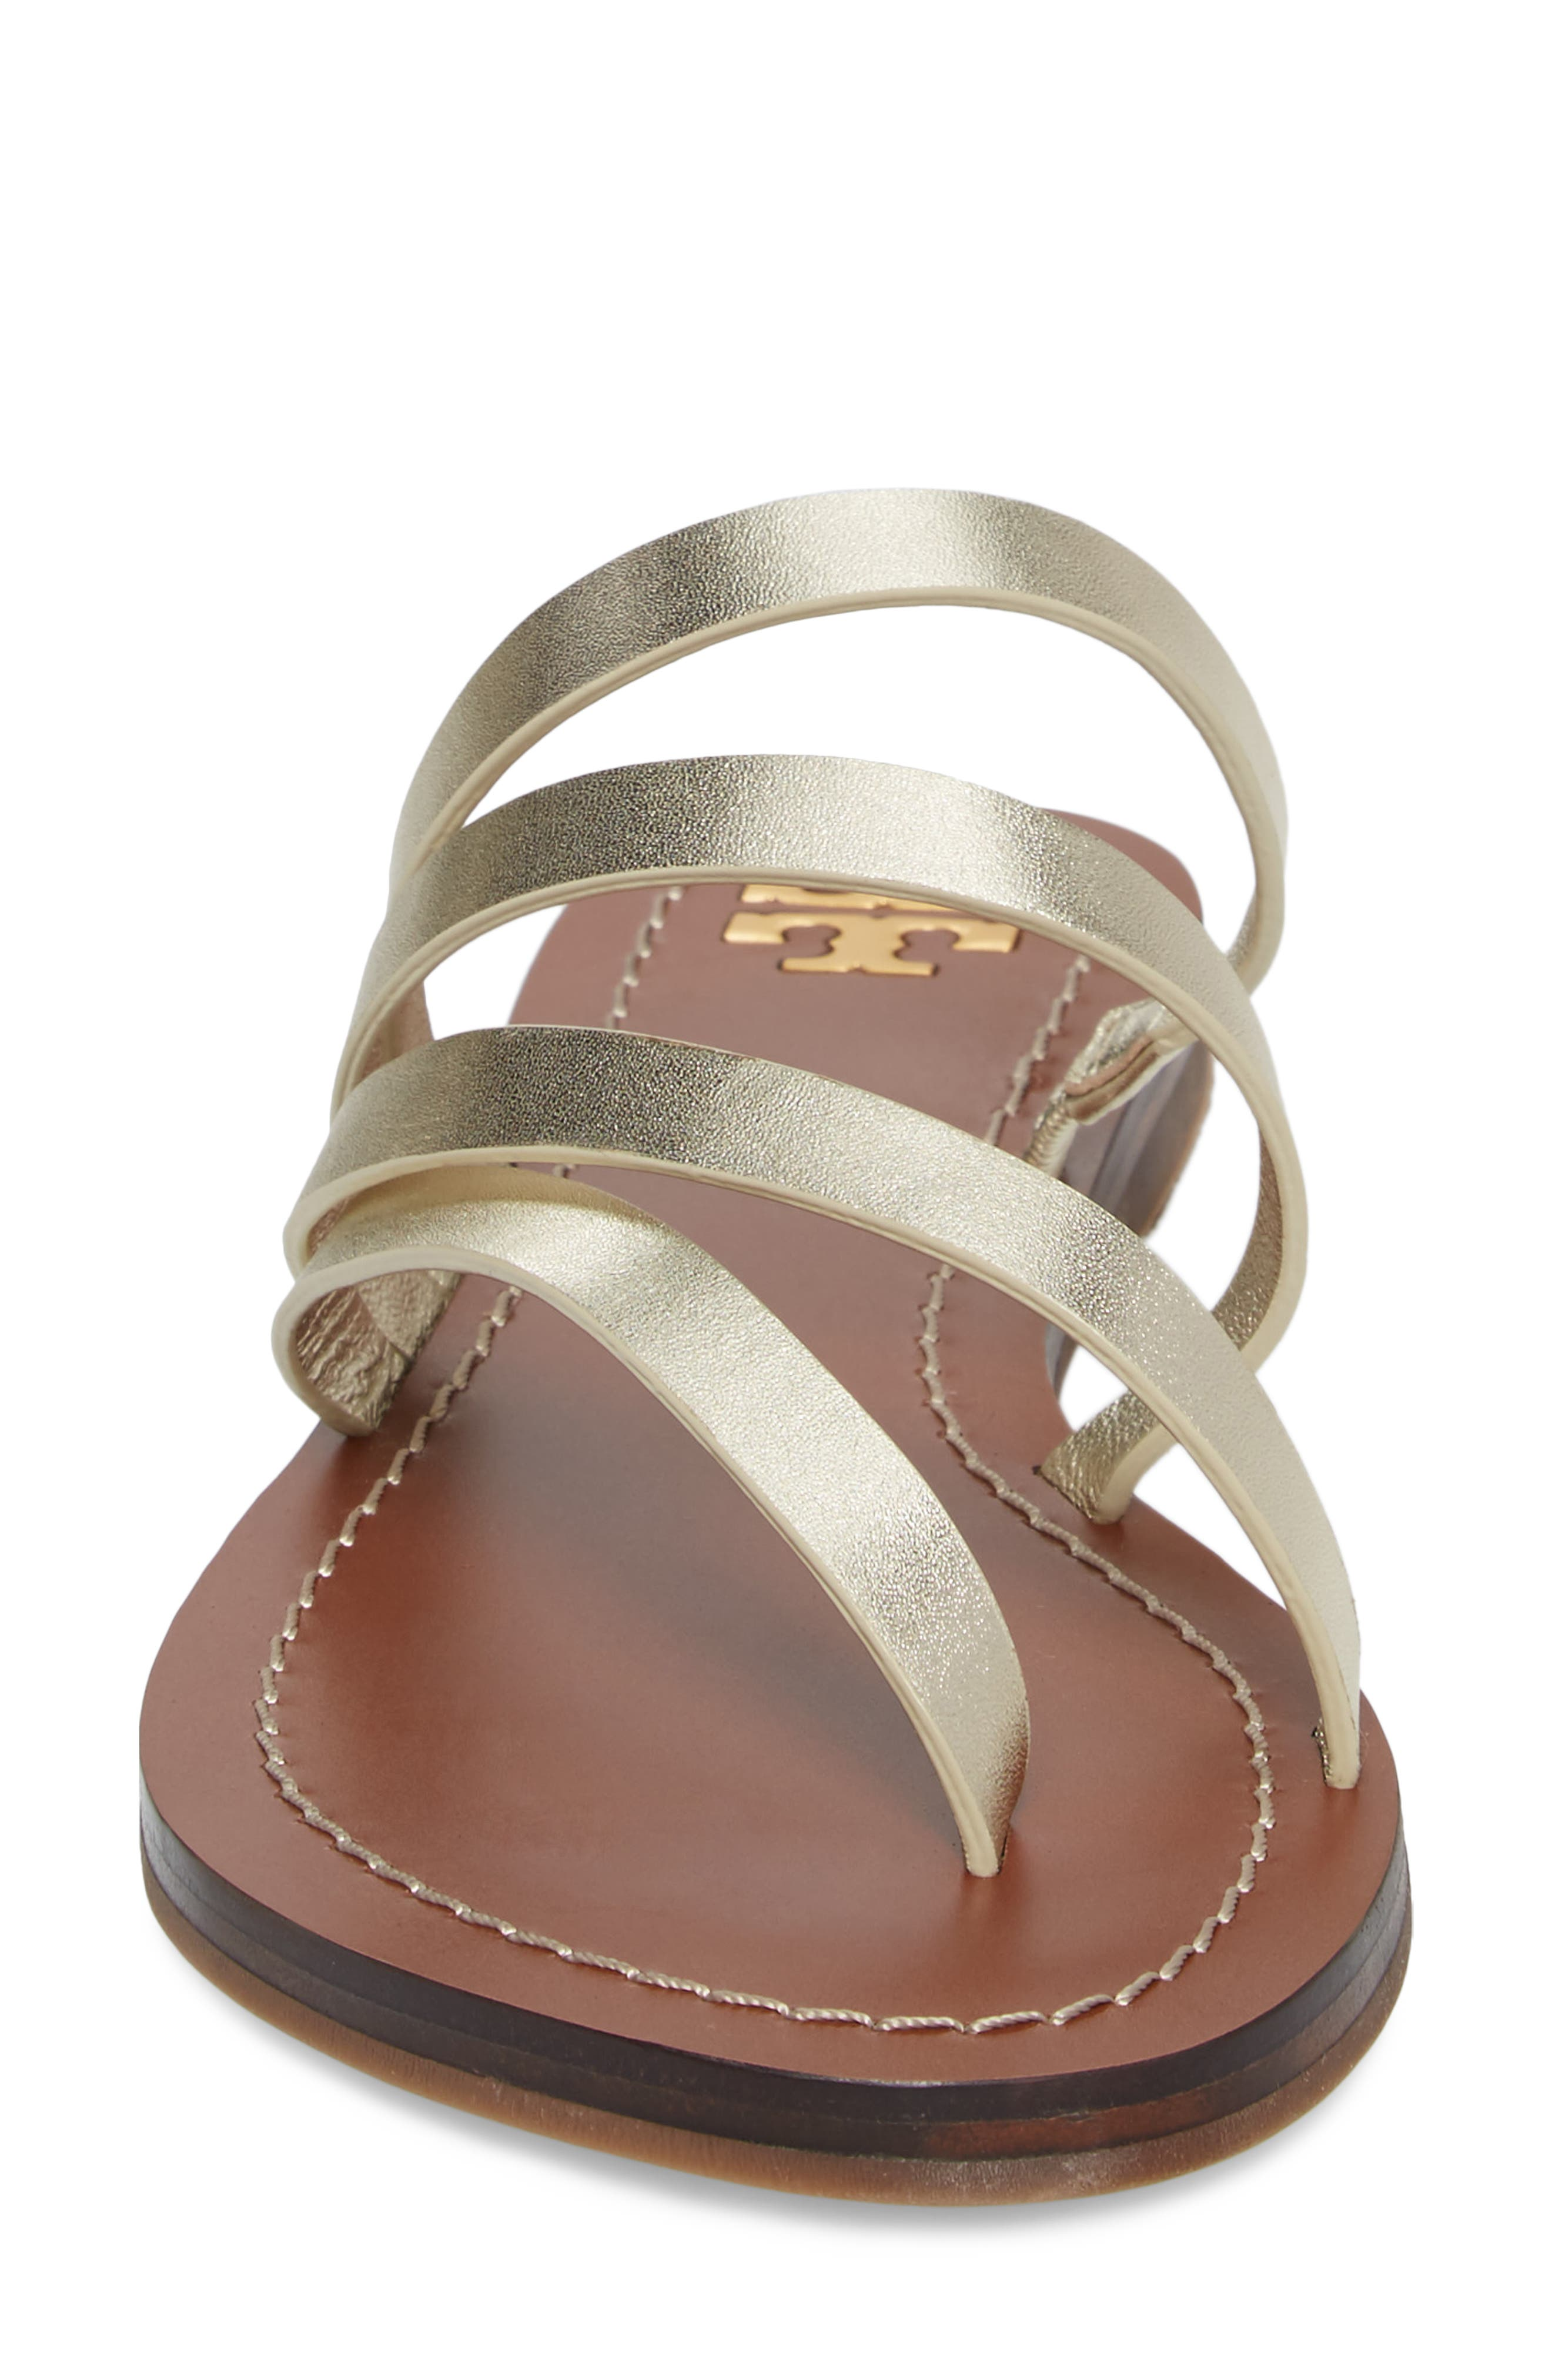 Patos Sandal,                             Alternate thumbnail 4, color,                             Spark Gold